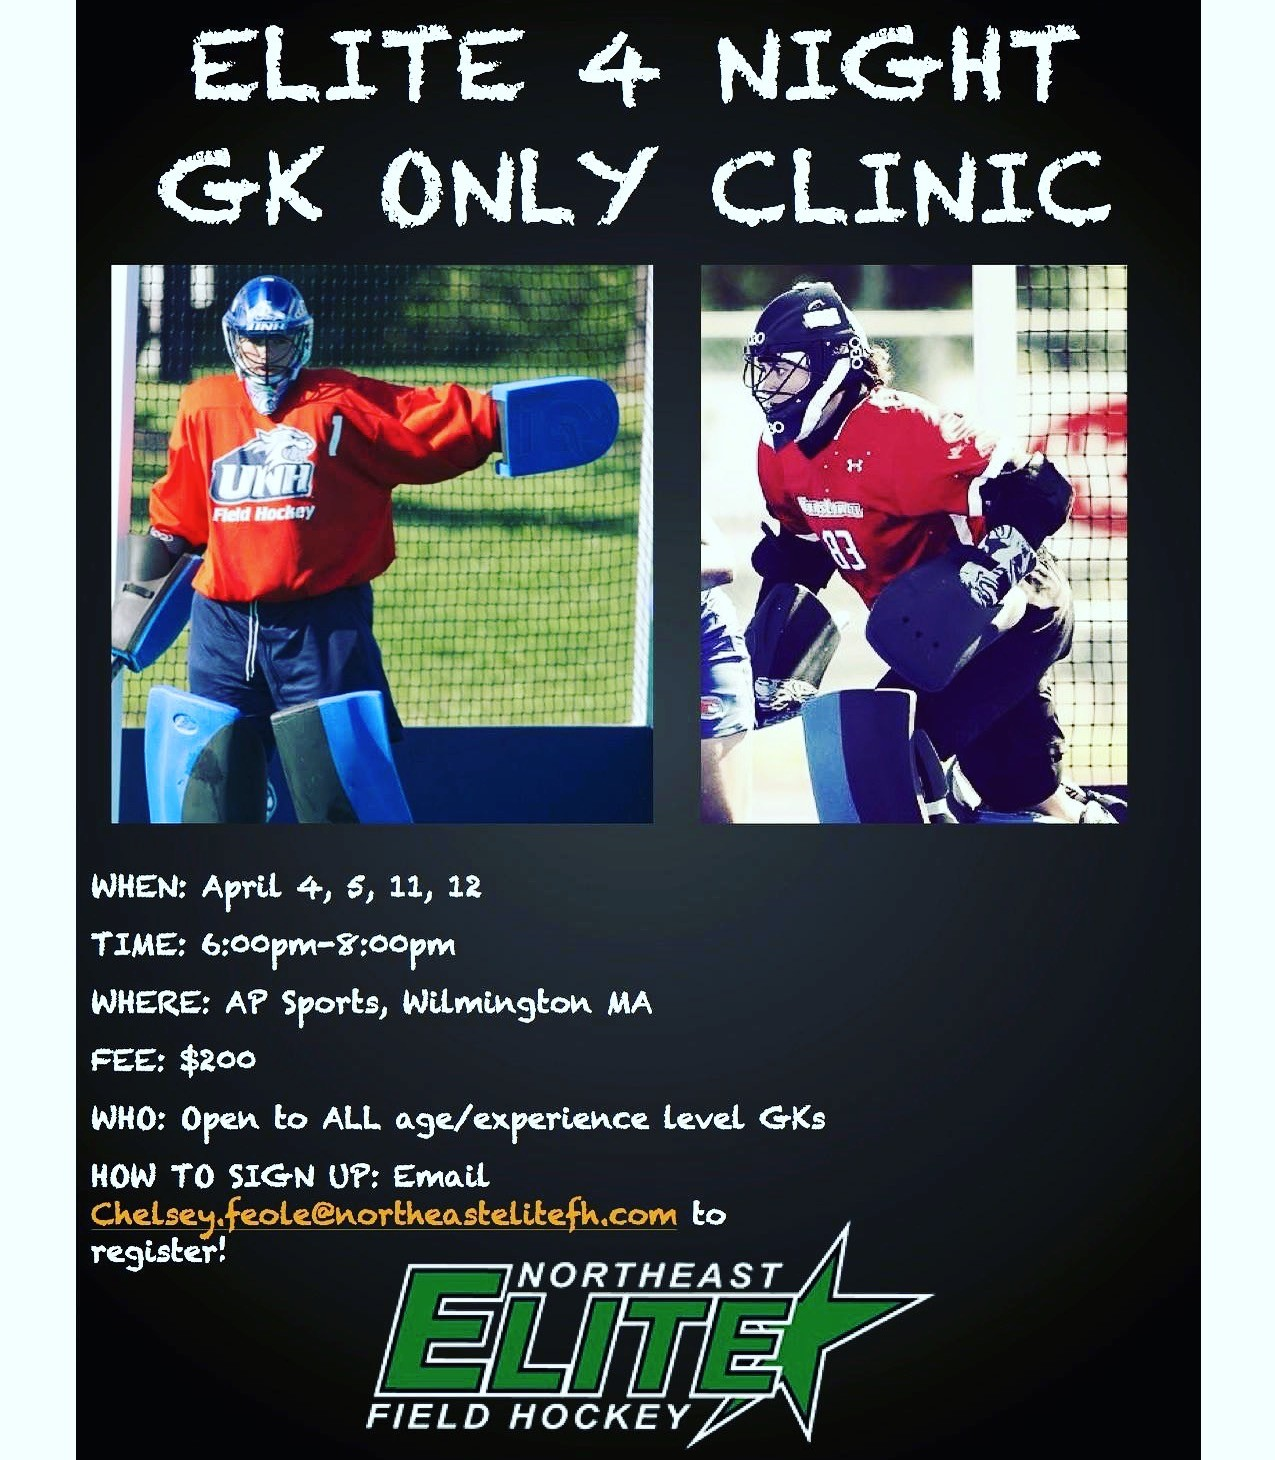 2017 GK ONLY CLINIC SERIES